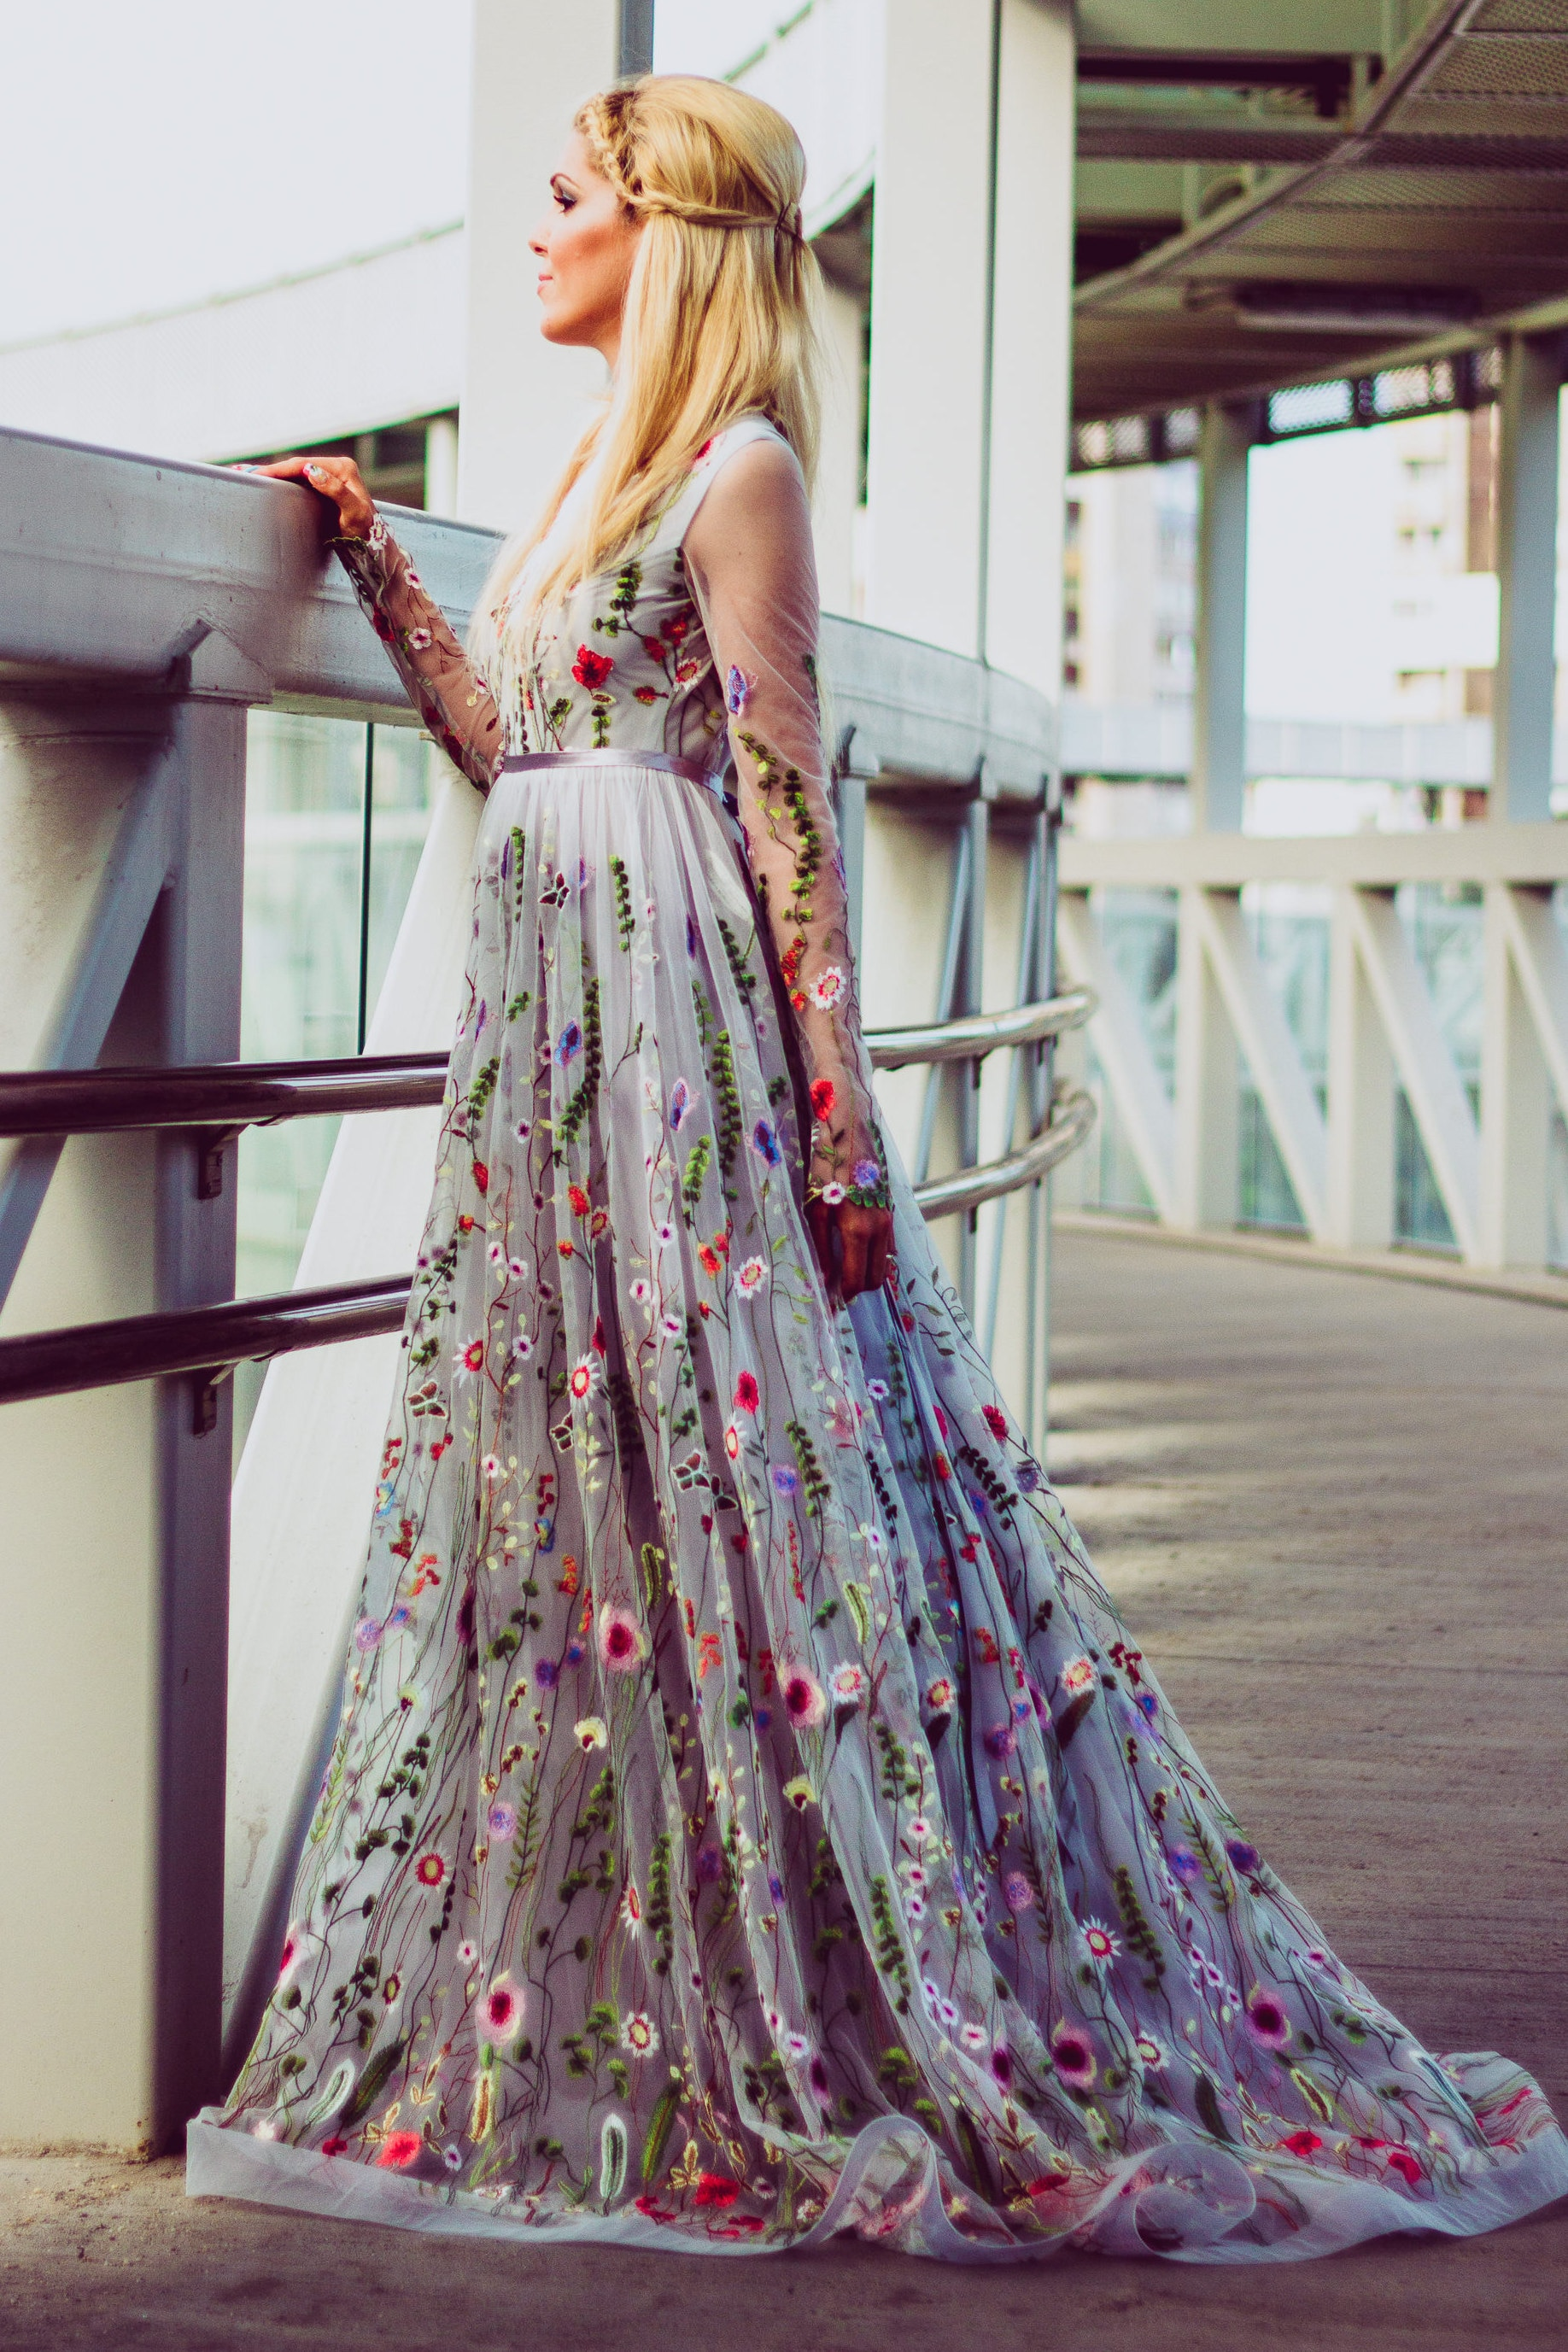 Grey Wedding Dress.Flower Wedding Dress In Gray Color Wedding Dress With Sleeves Bridal Dress Long Wedding Gown In Grey Embroidered Wedding Dress From Tulle